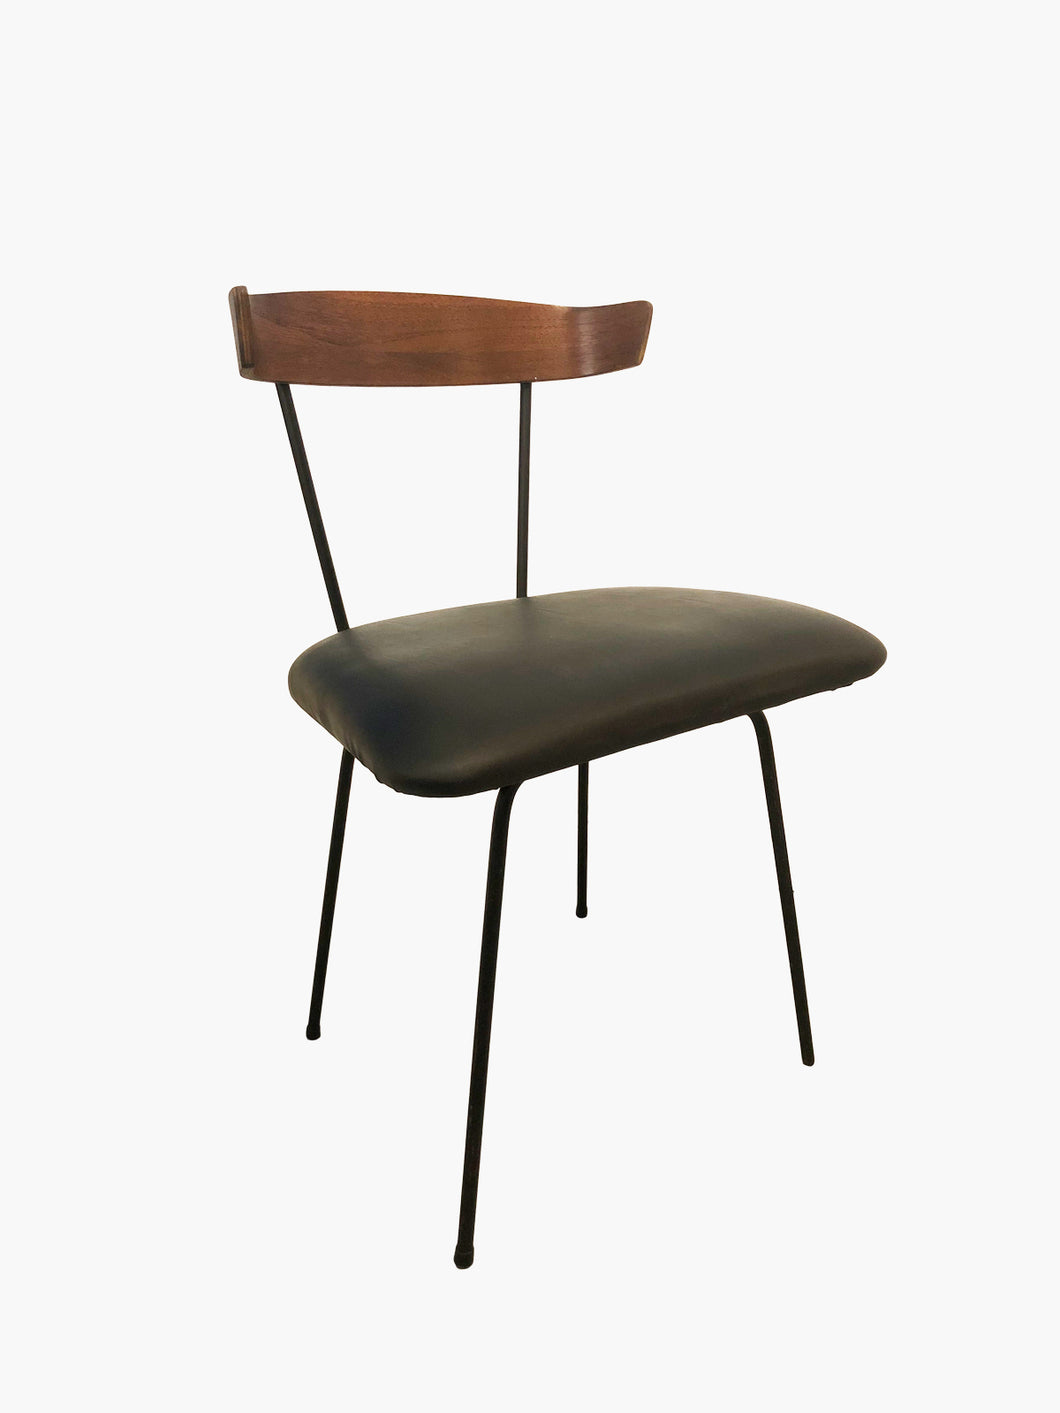 Paul McCobb Dining Chairs: ON HOLD